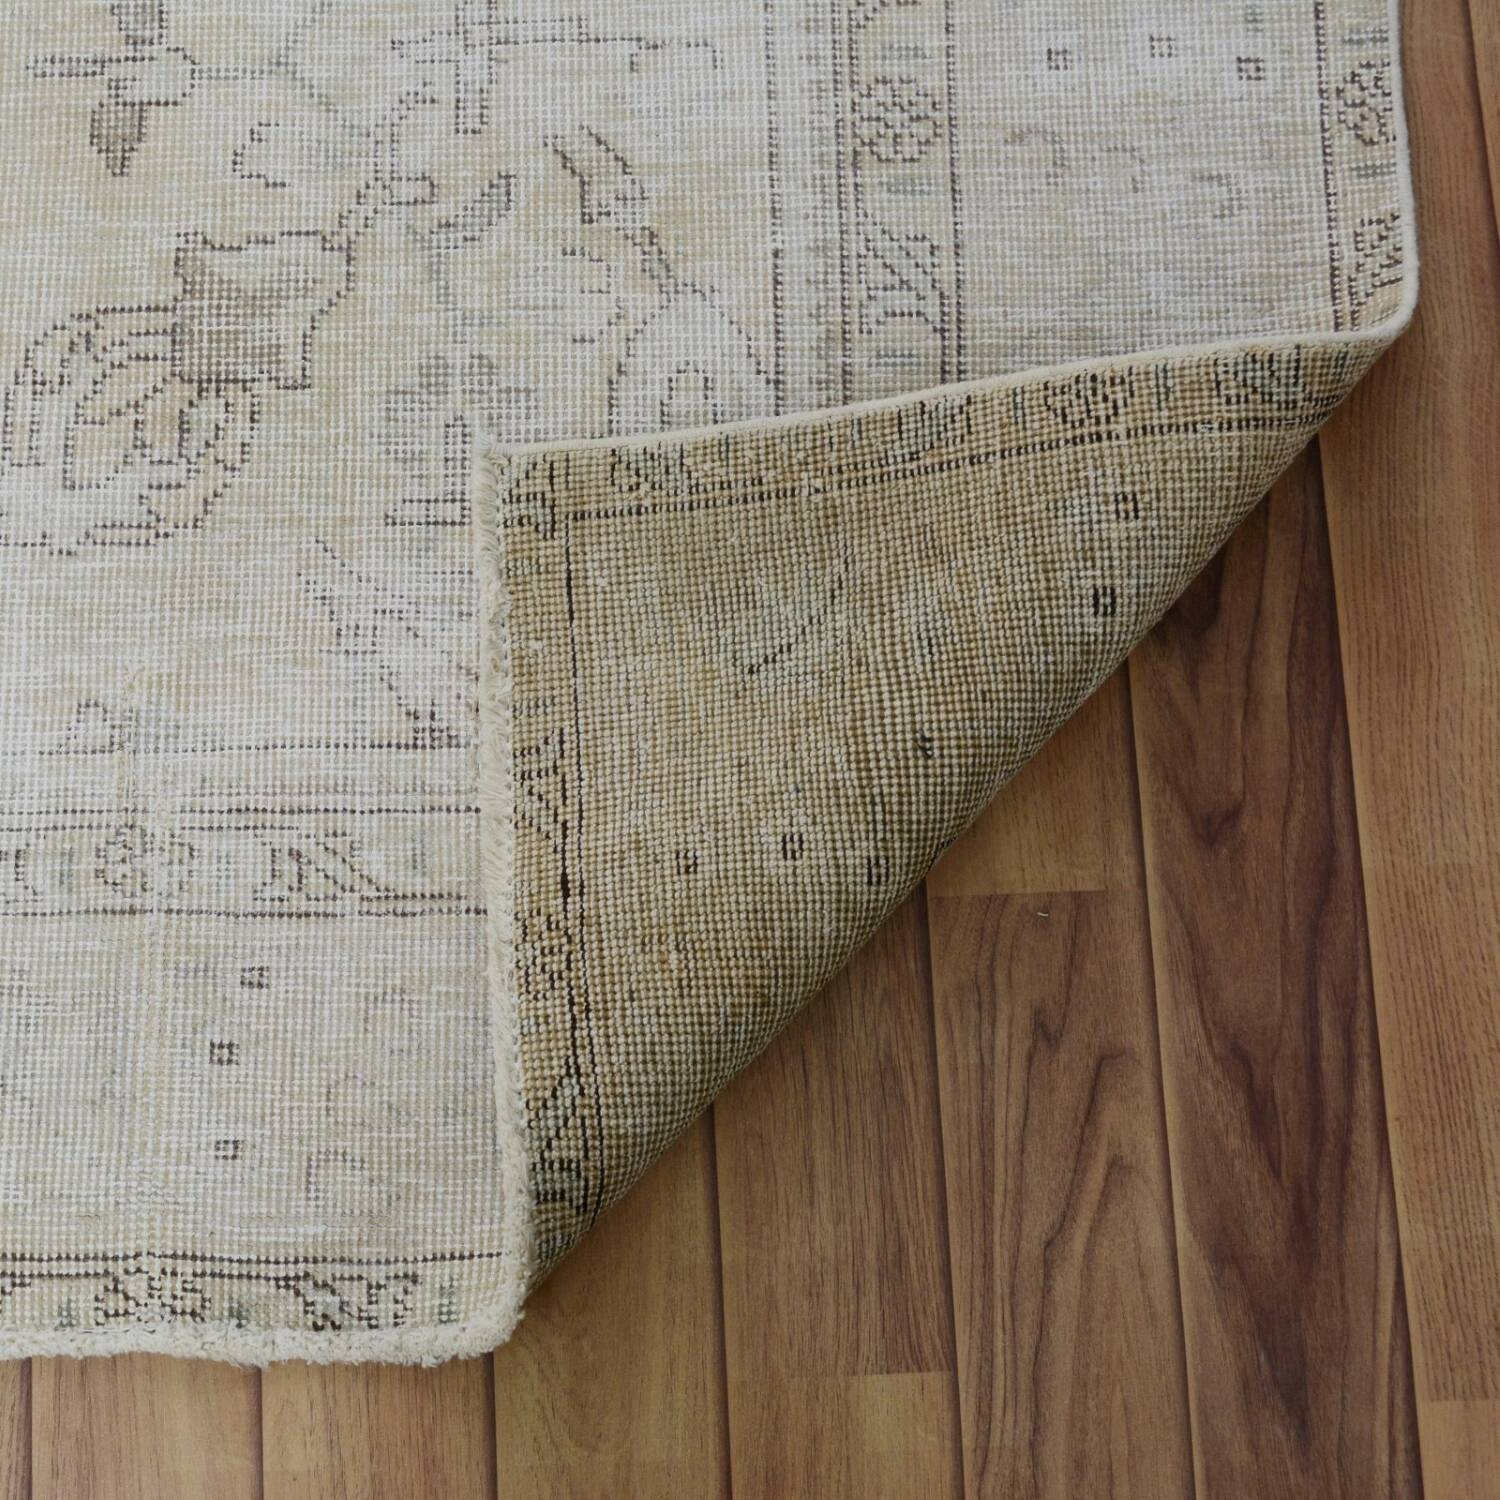 Antique Floral Tabriz Distressed  Persian Muted Area Rug 6x9 image 6